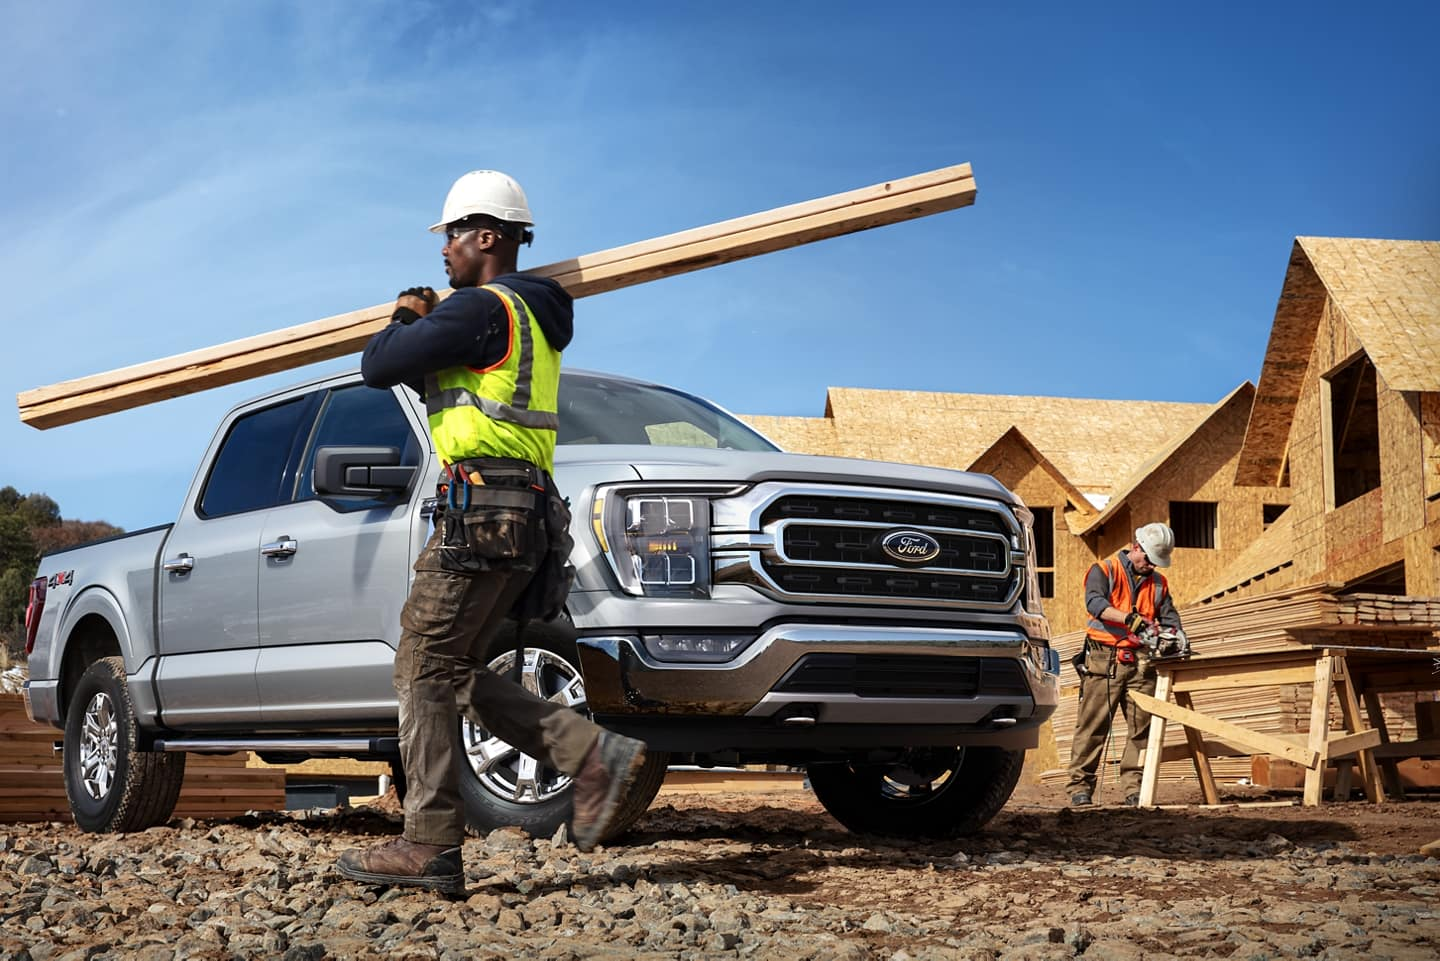 The Ford F-150 is used as a Work Truck